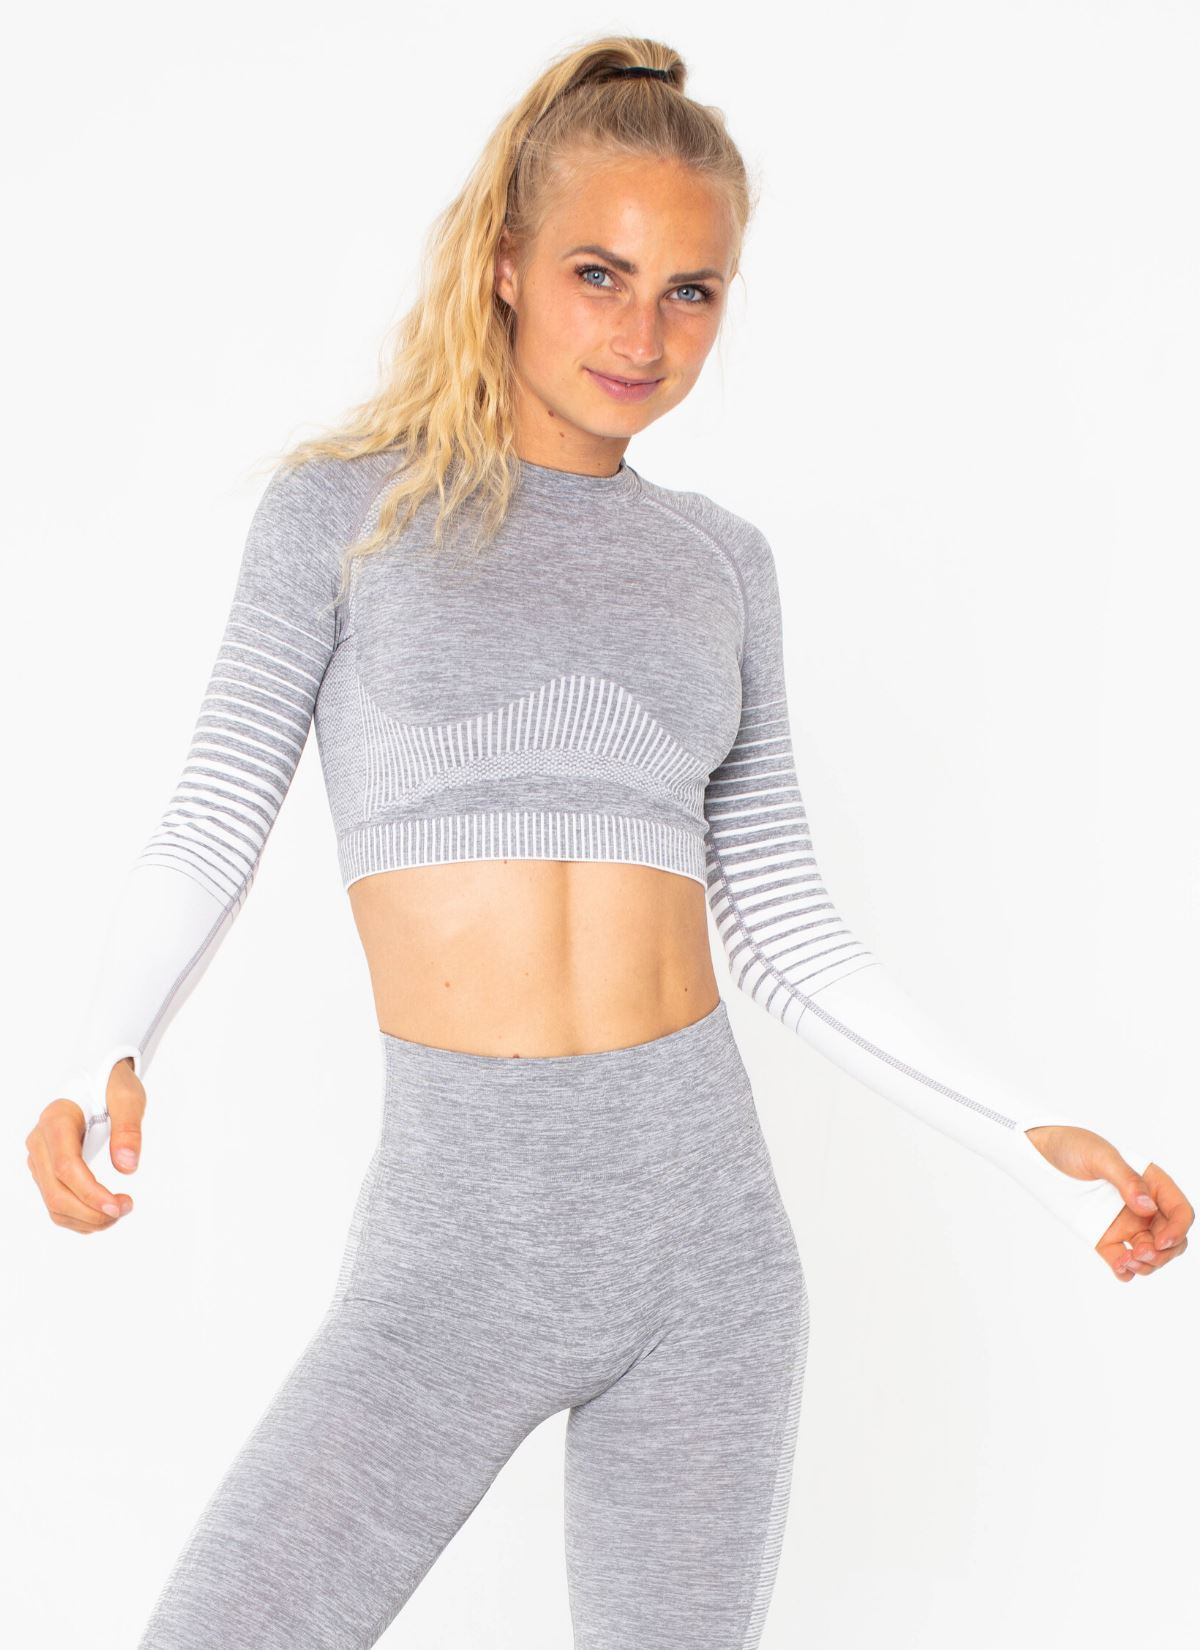 Halo Seamless White Top - Athlete Body